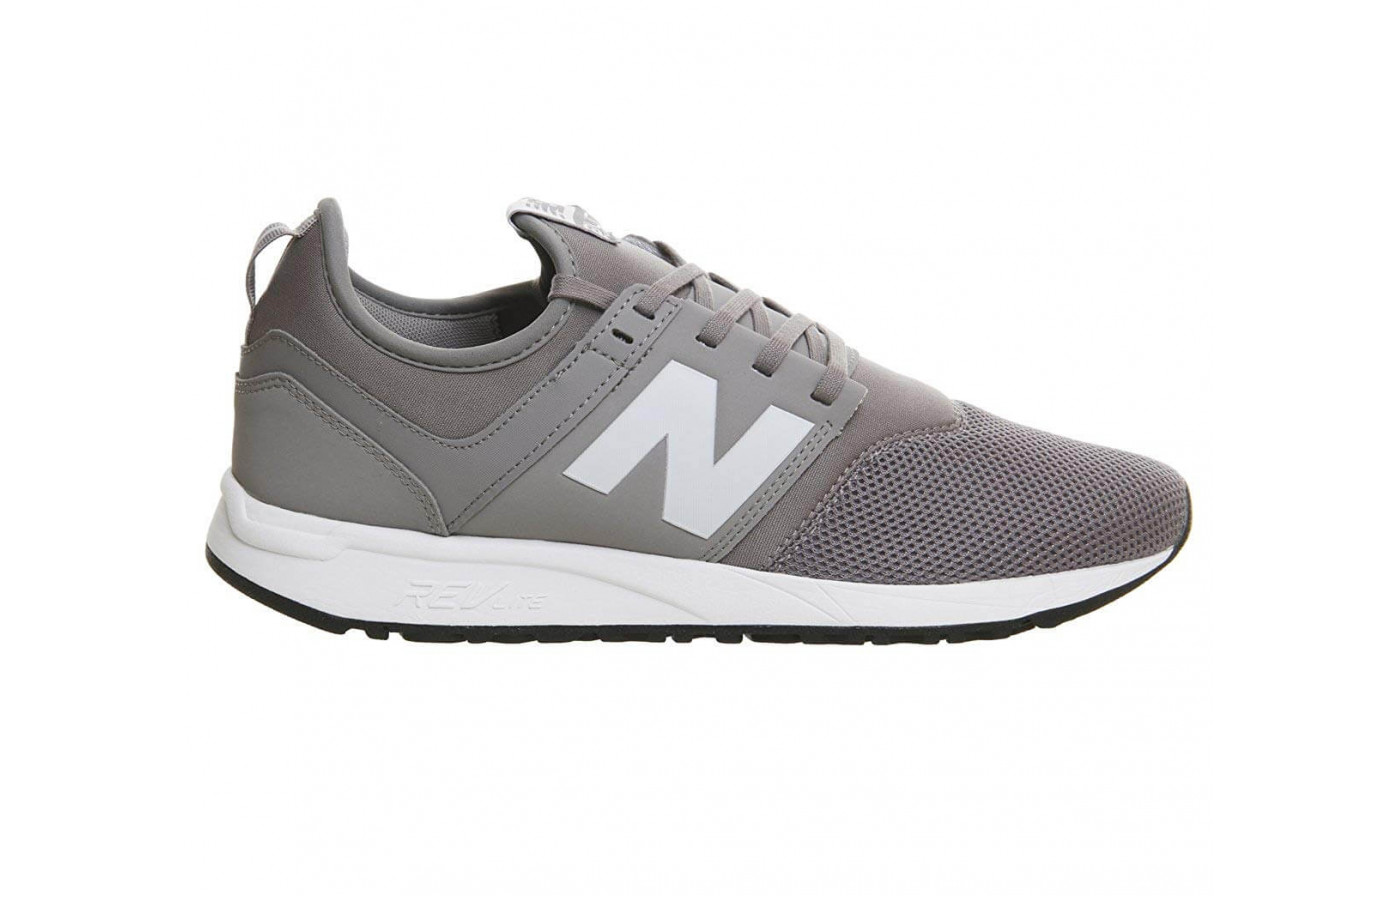 5a548abad7691 New Balance 247 Classic - To Buy or Not in Aug 2019?